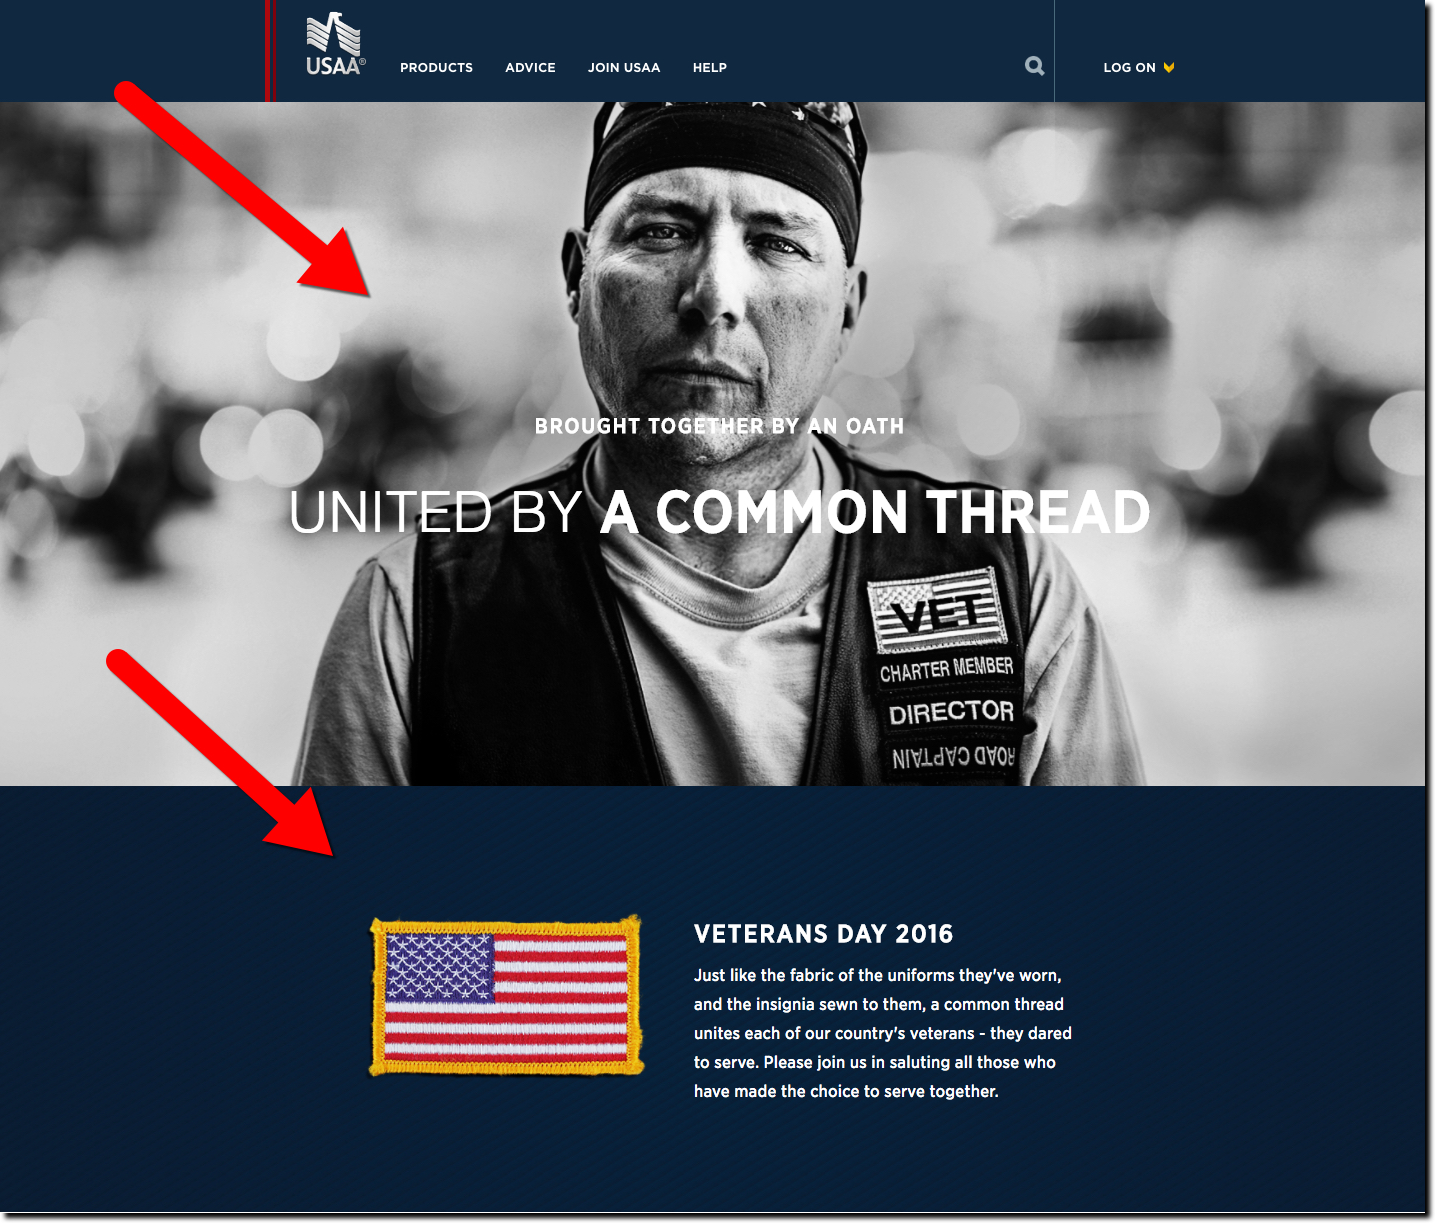 USAA homepage on Veterans Day (11 Nov 2016)